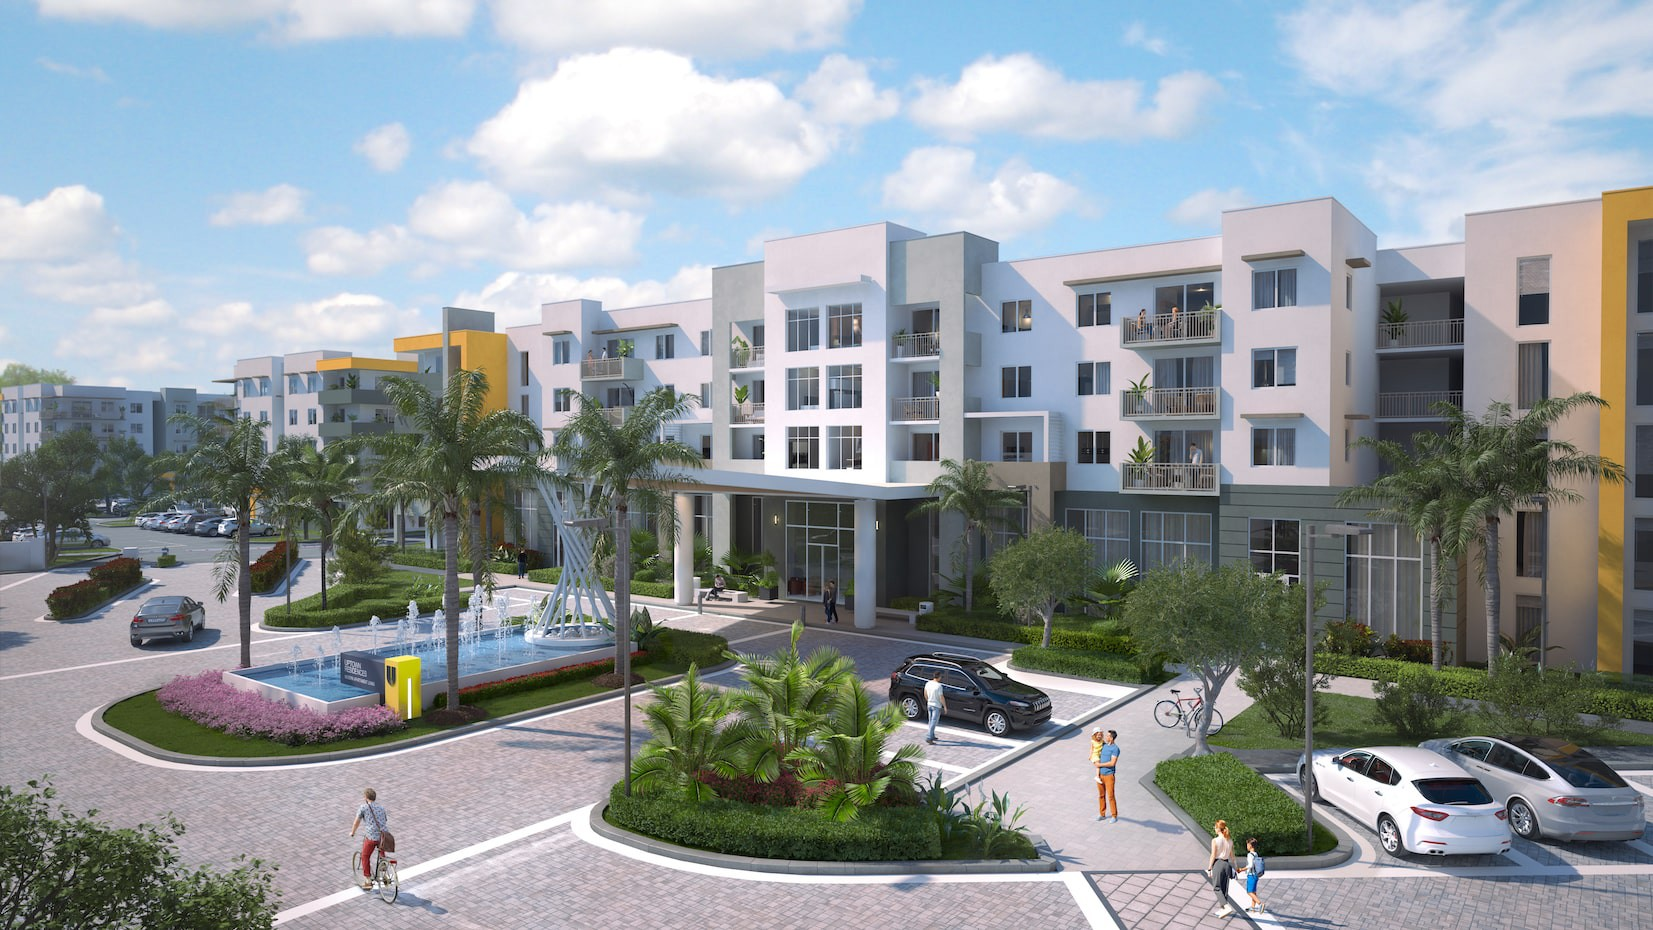 Apartments Near Keiser The Residences | Uptown Boca for Keiser University Students in Fort Lauderdale, FL